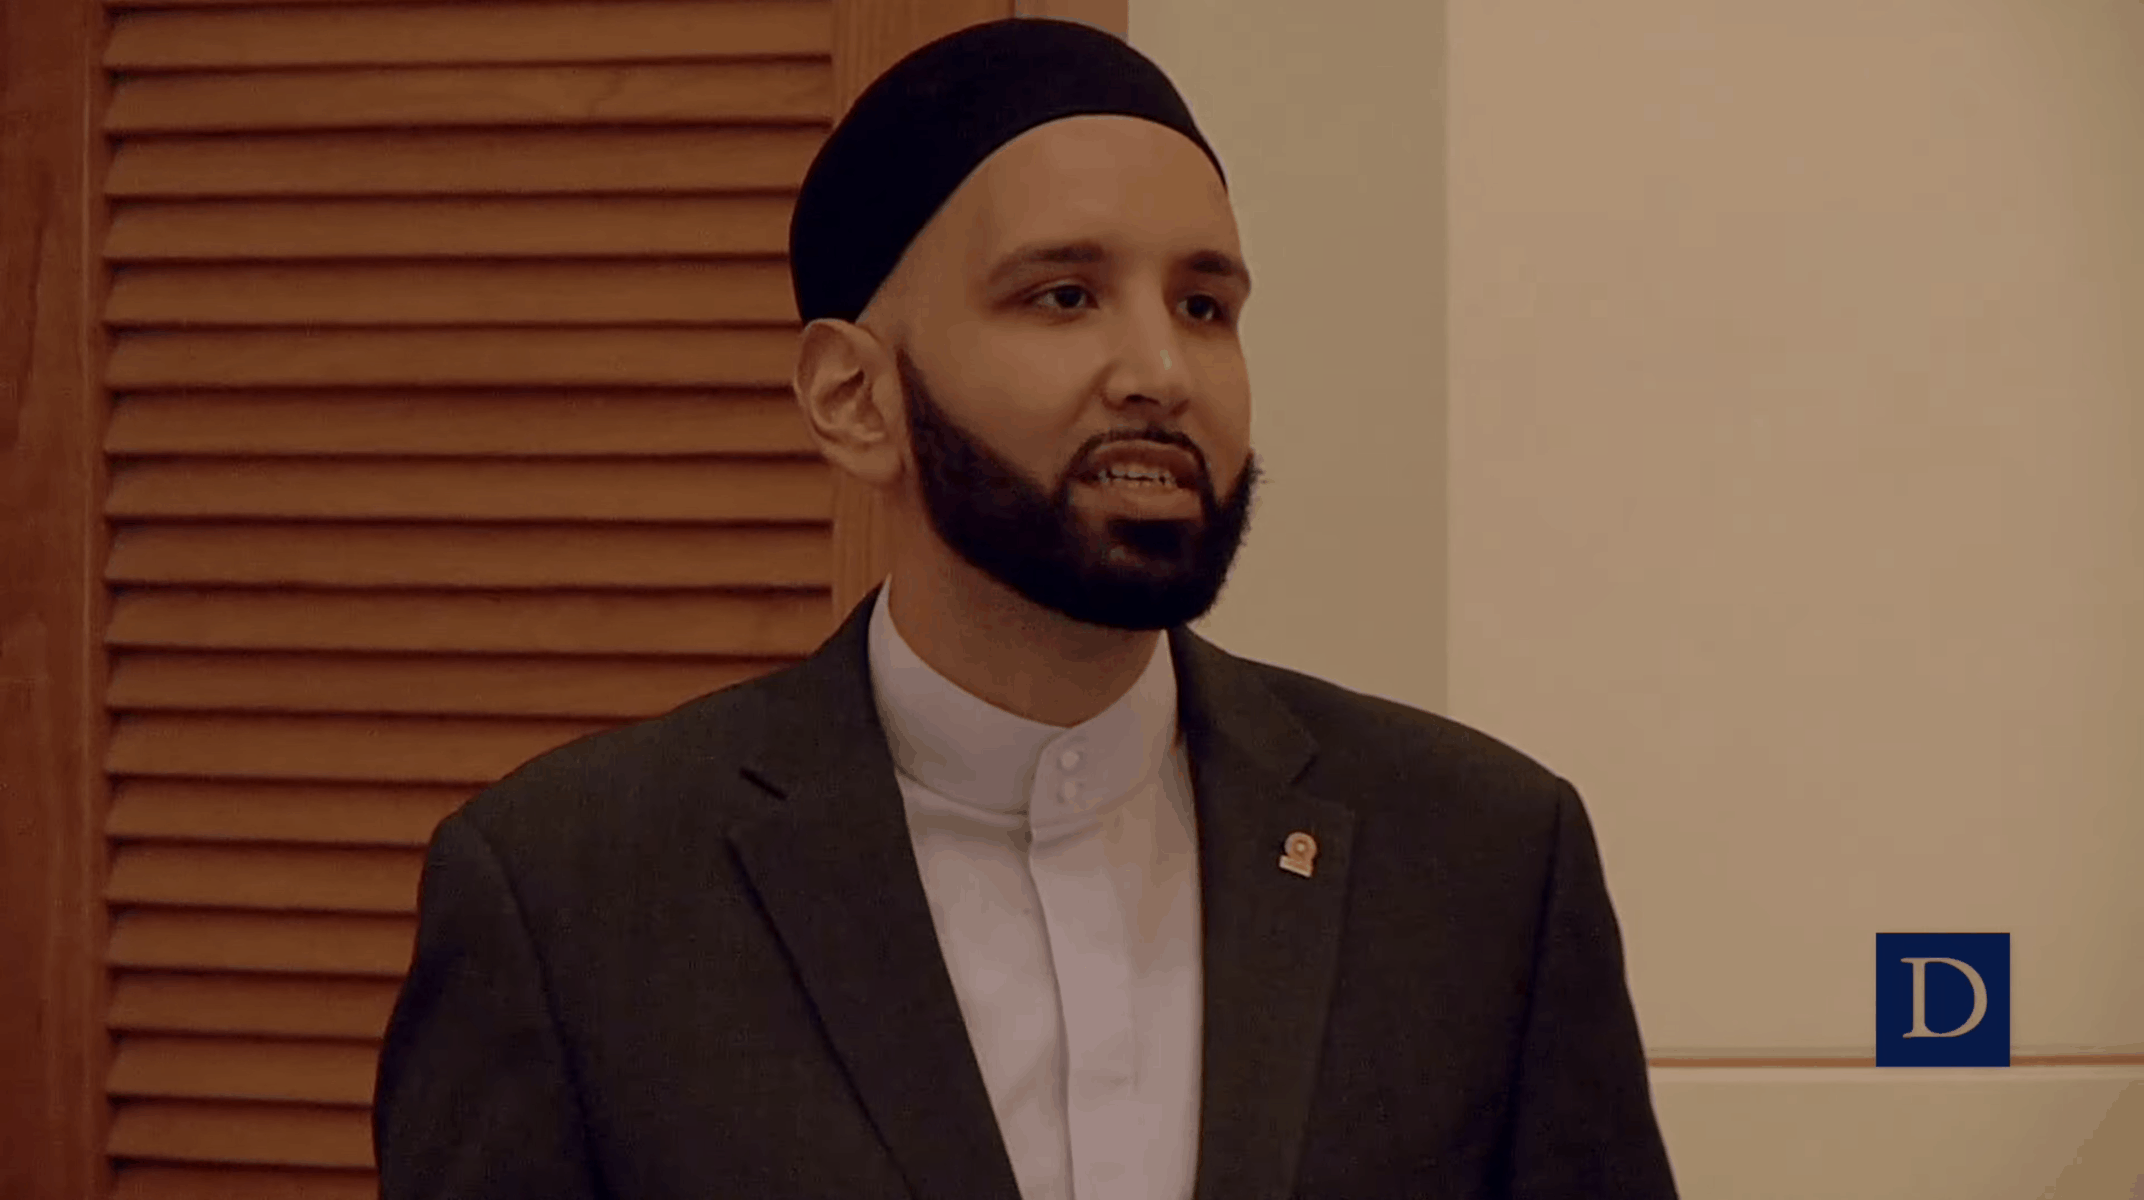 Omar Suleiman – Human Rights, Faith, and the Border